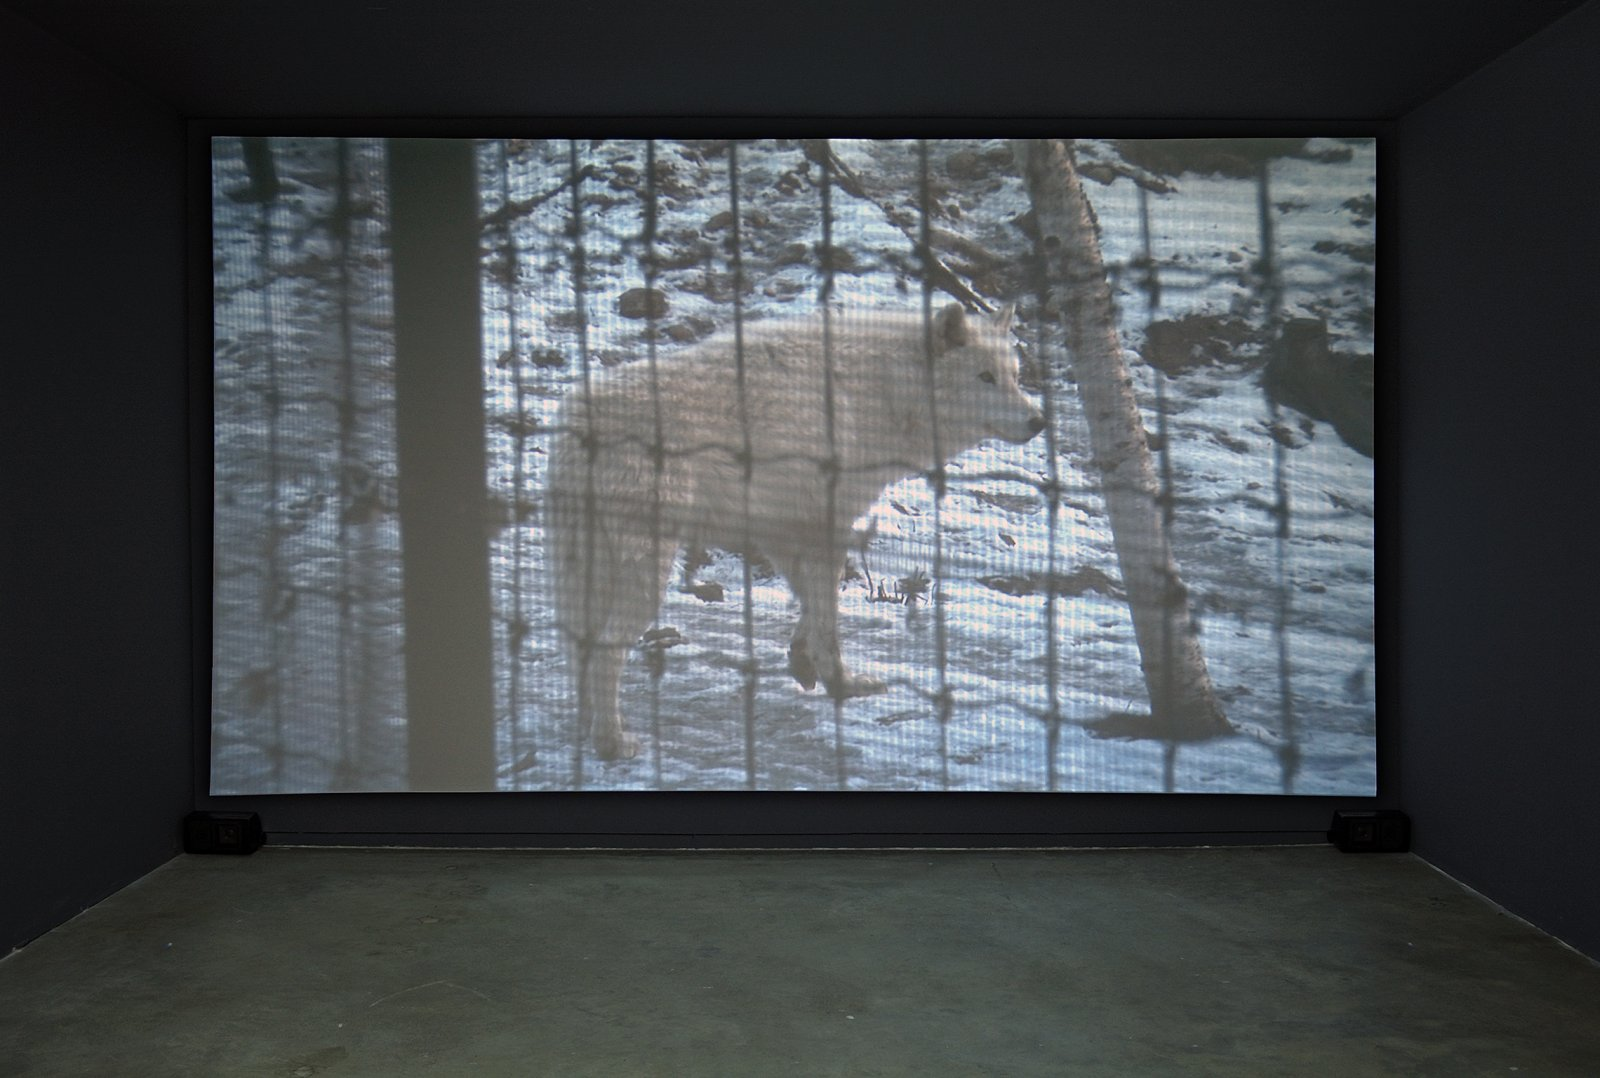 Kevin Schmidt, Sad Wolf (detail), 2006, DIY projection installation, 4 minutes, 11 seconds. Installation view, Catriona Jeffries, Vancouver, 2006 by Kevin Schmidt